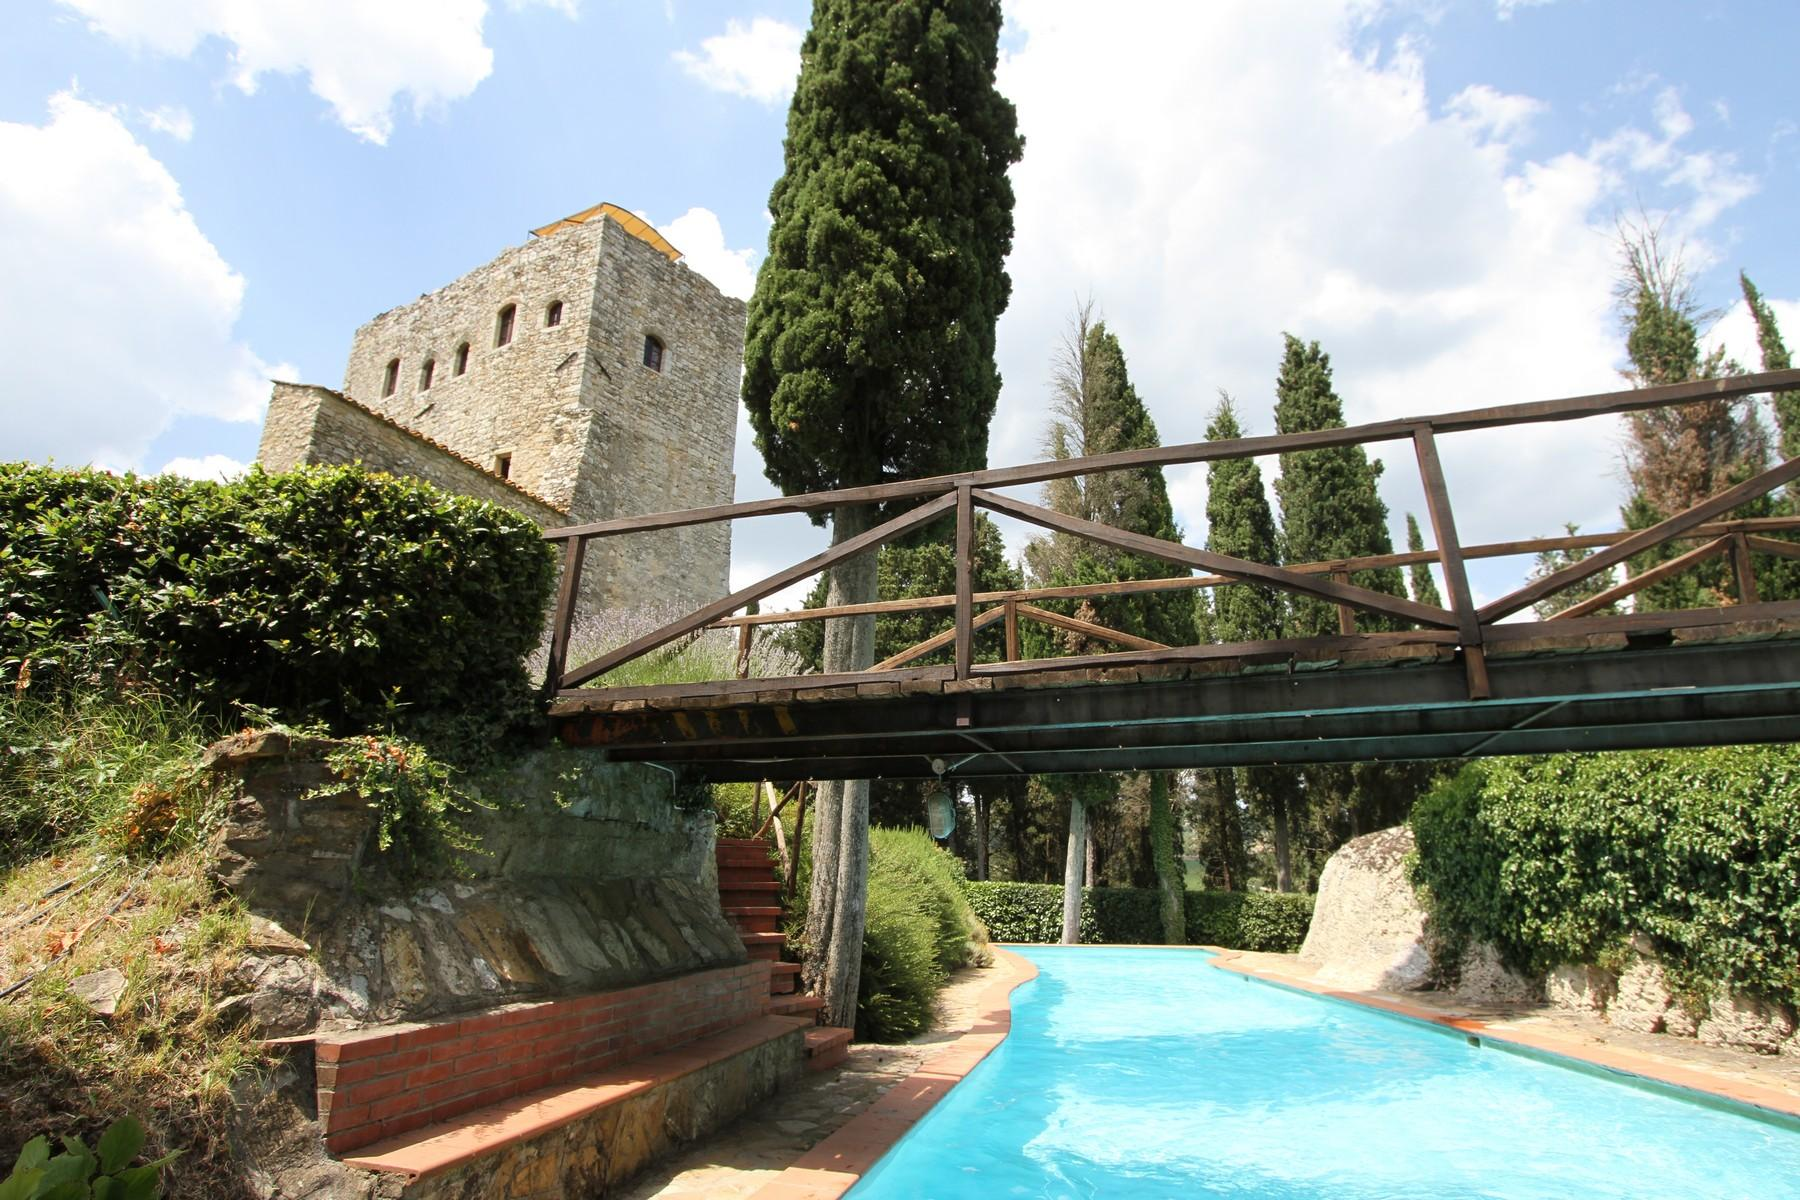 Exclusive manor in the heart of Chianti Classico - 1